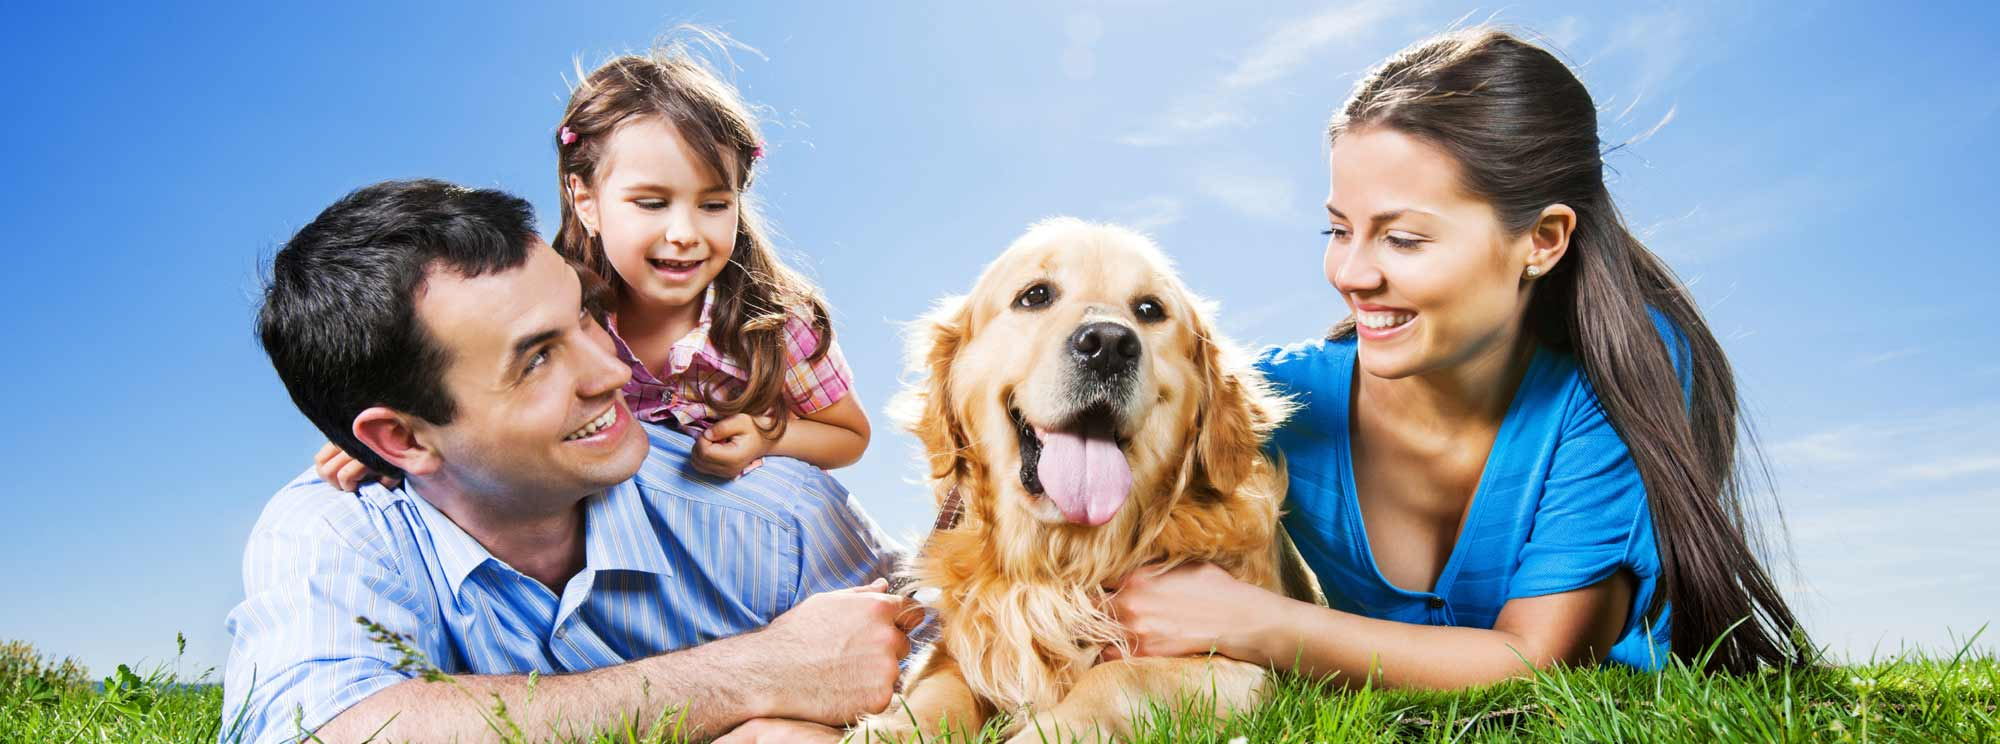 Smiling happy family with Golden Retreiver